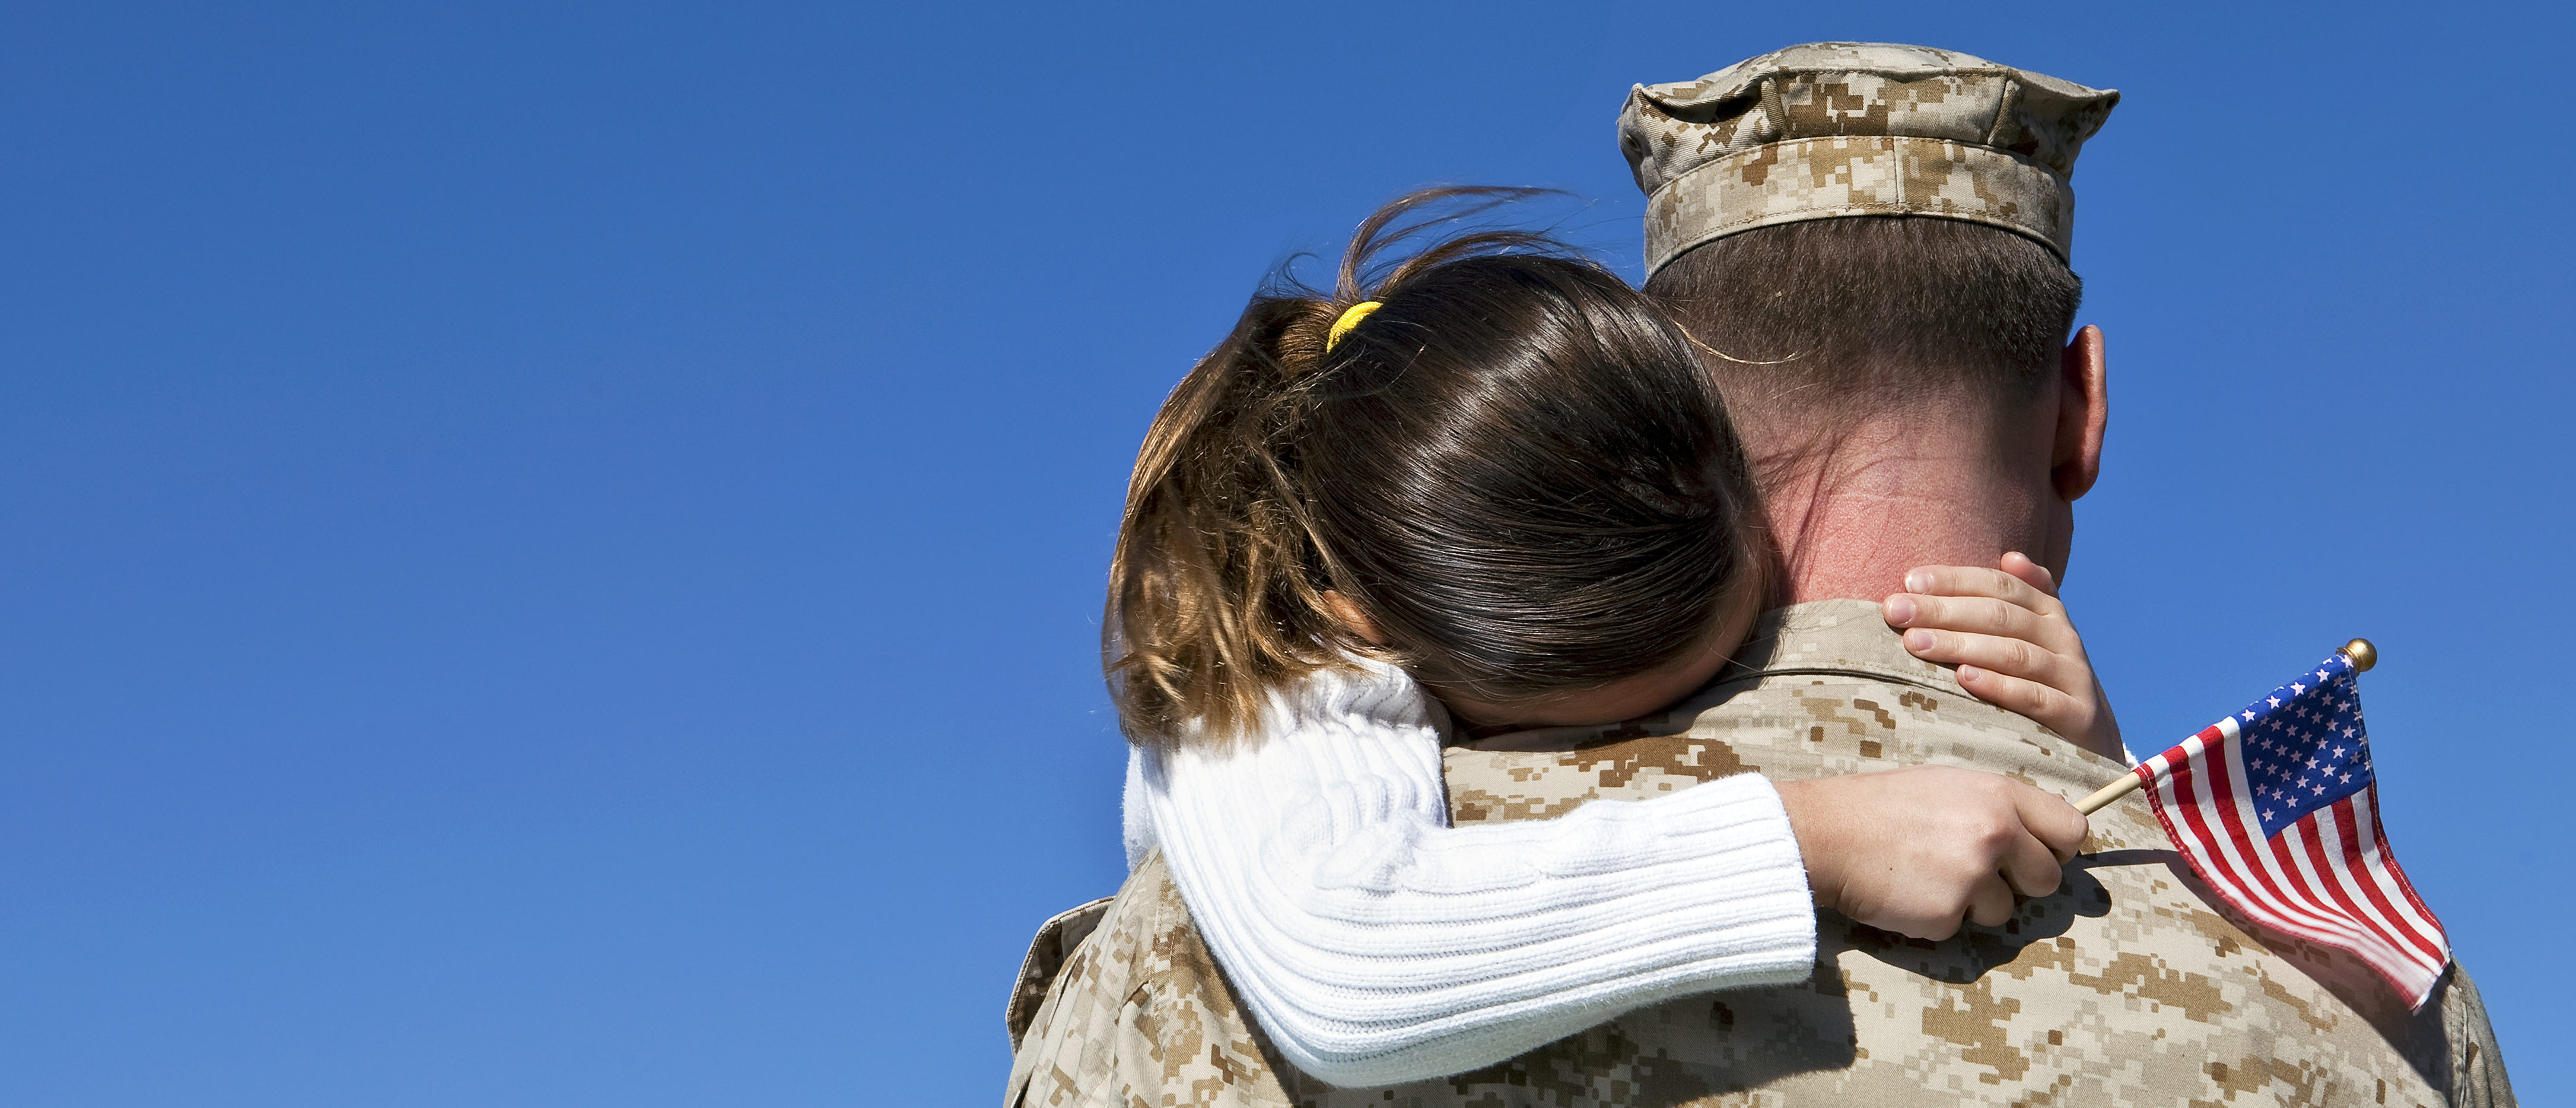 Military man hugs daughter, Shutterstock/ By Straight 8 Photography